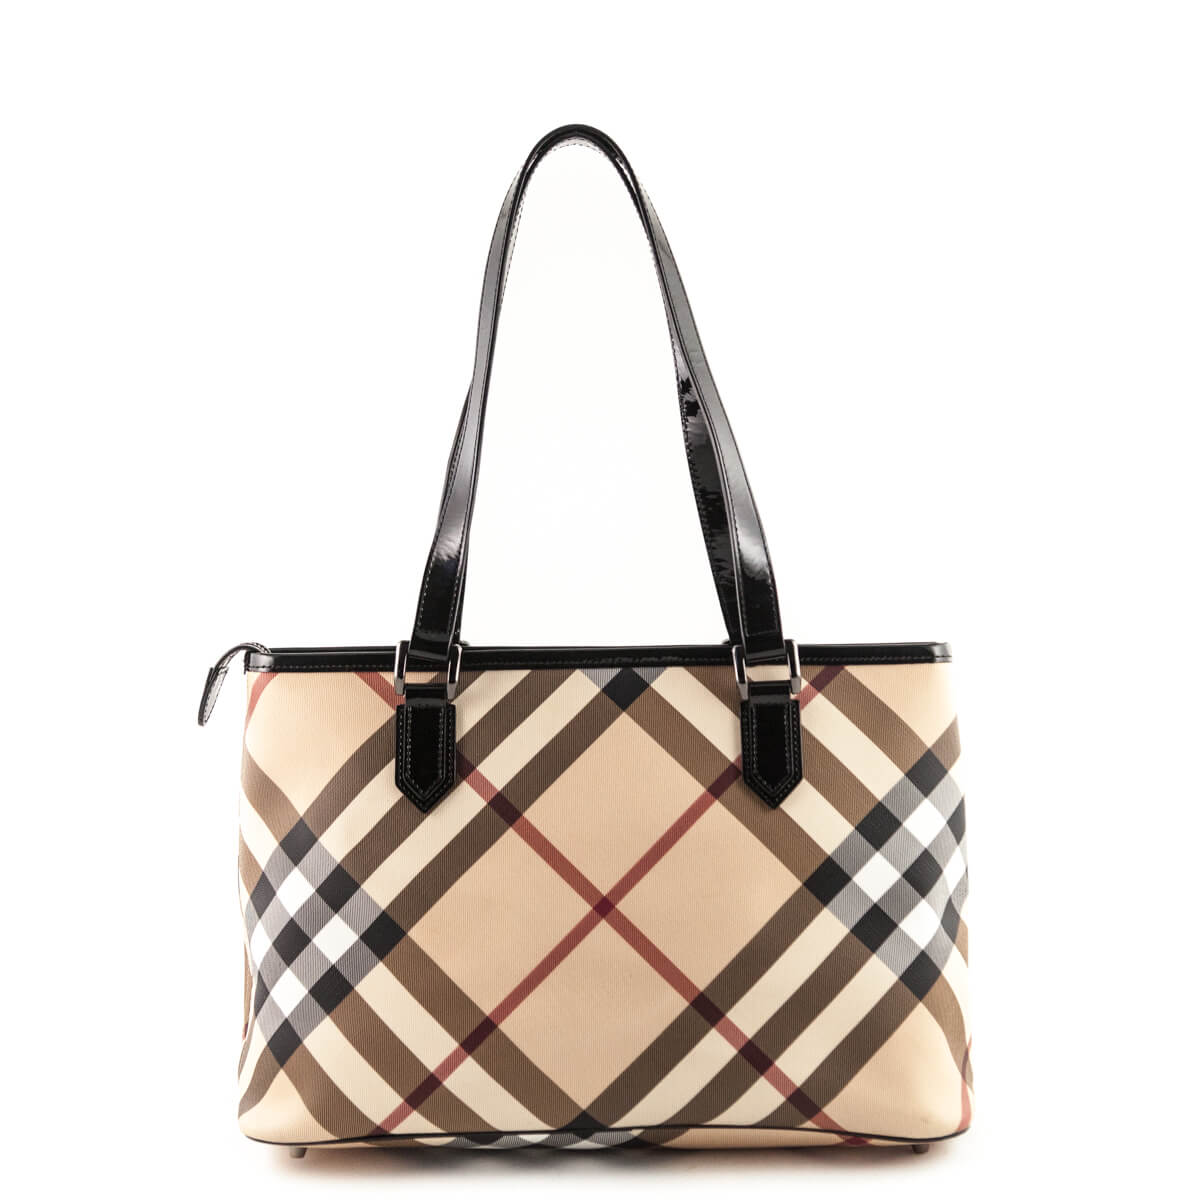 ... Burberry Nova Check Tote Bag - LOVE that BAG - Preowned Authentic  Designer Handbags ... 79a8148ab1ebd